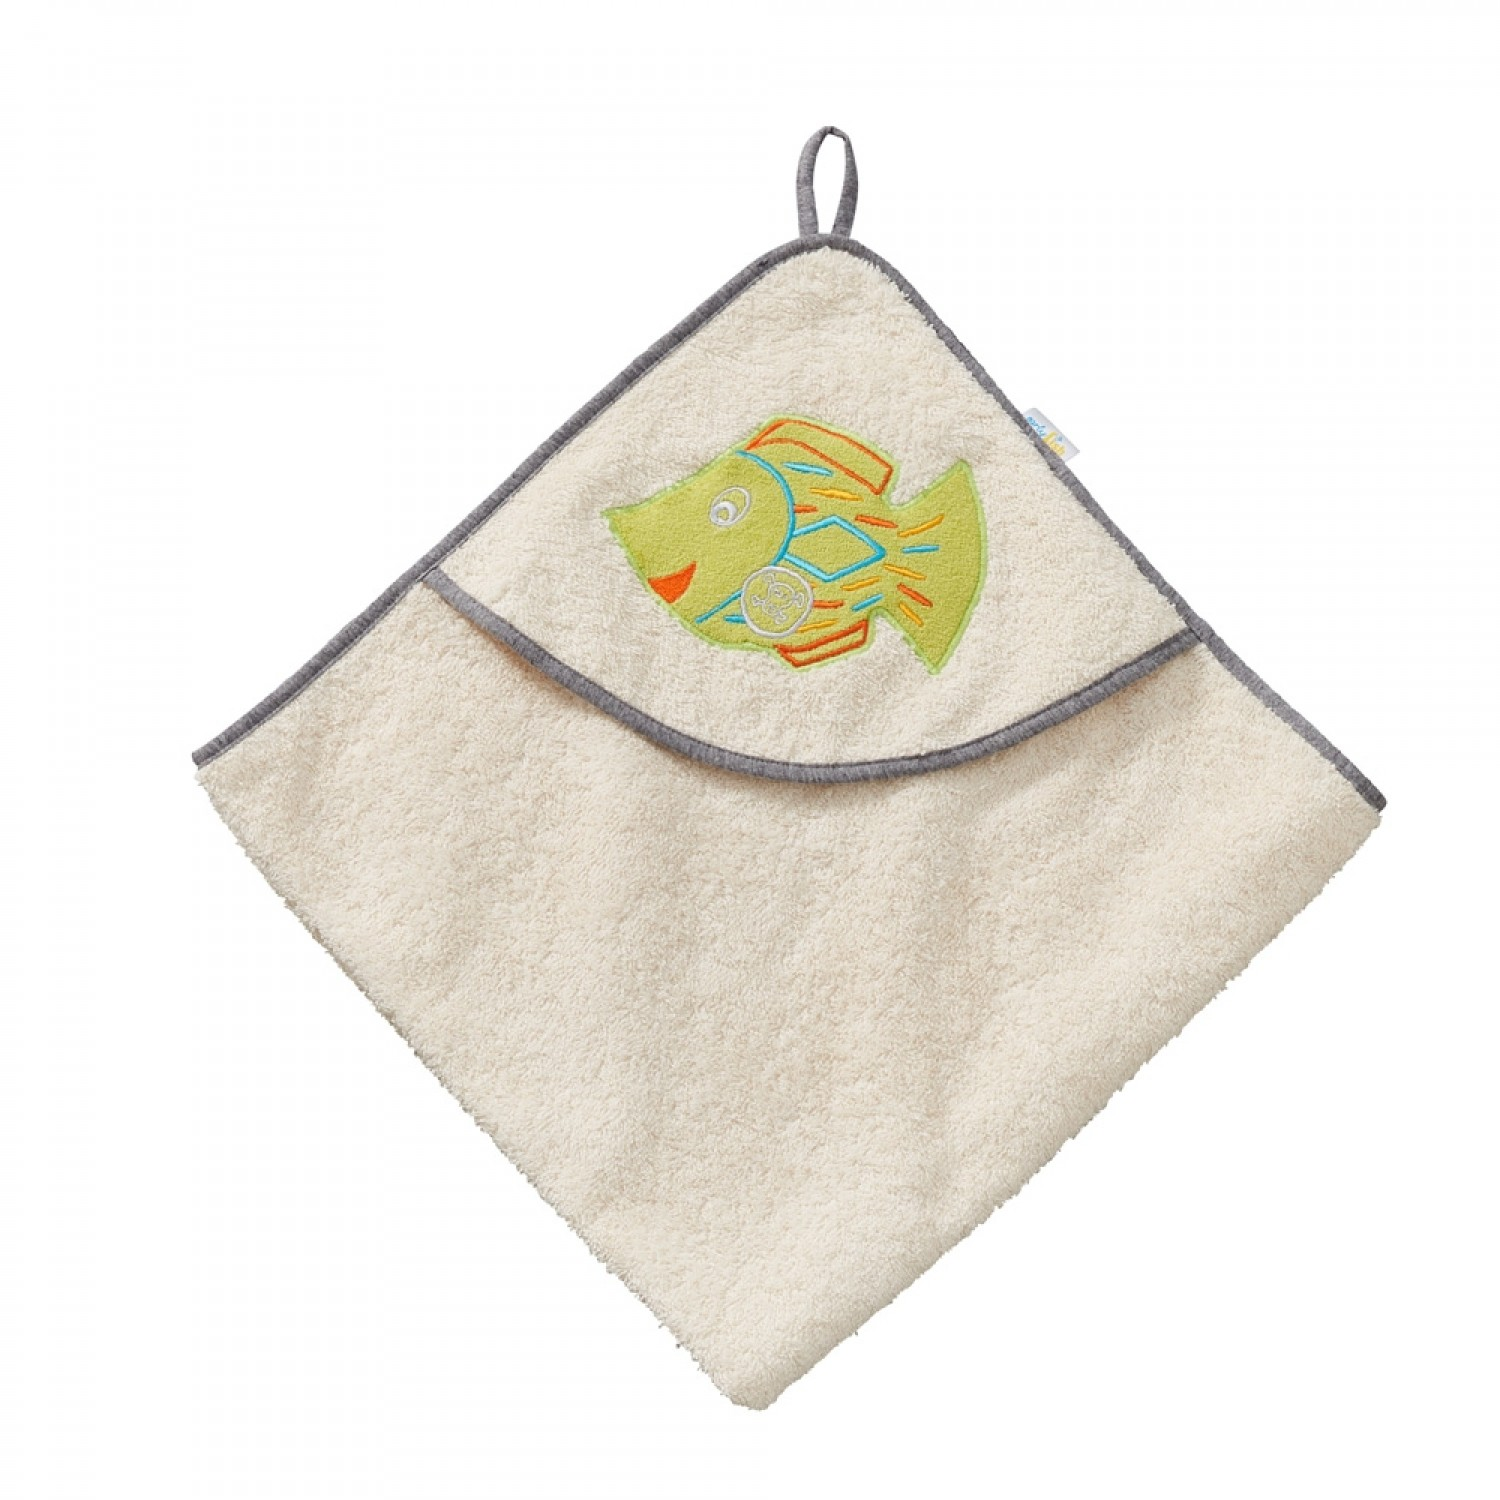 "early fish Hooded Bath Towel ""Pirate Fish"" 75x75 cm"